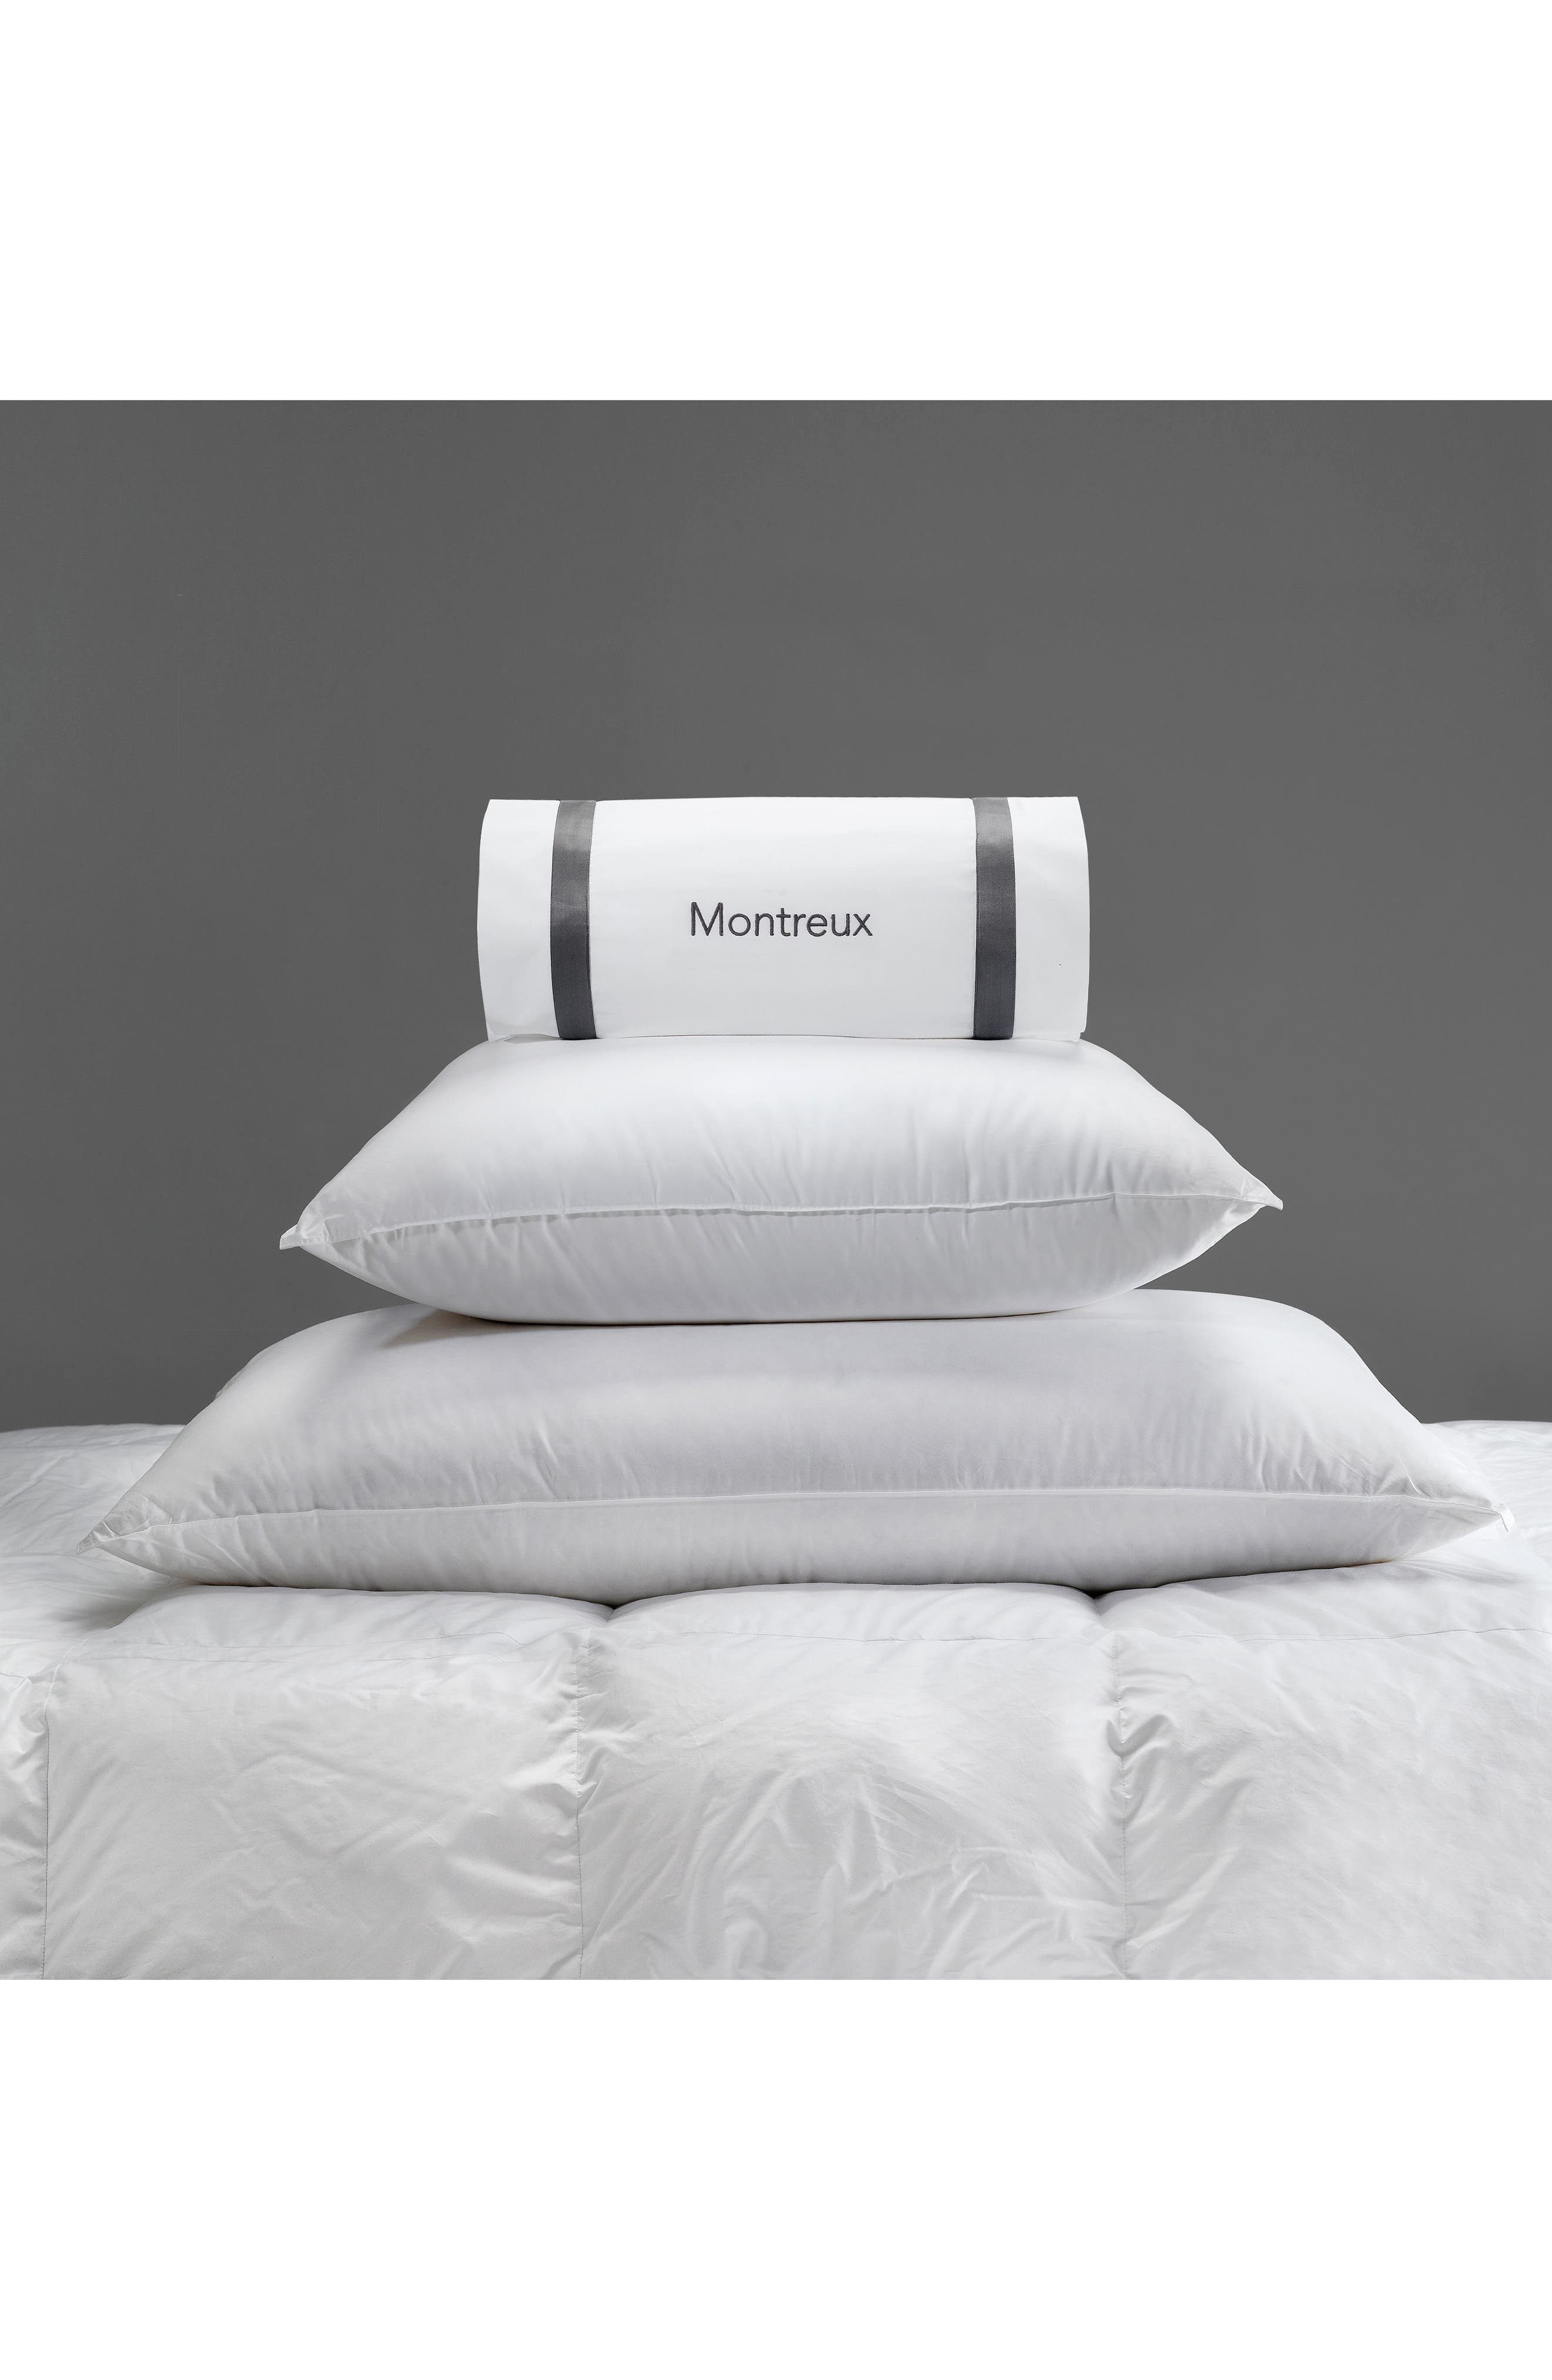 Montreux Medium Firm 600 Fill Power Down Pillow,                             Alternate thumbnail 2, color,                             White